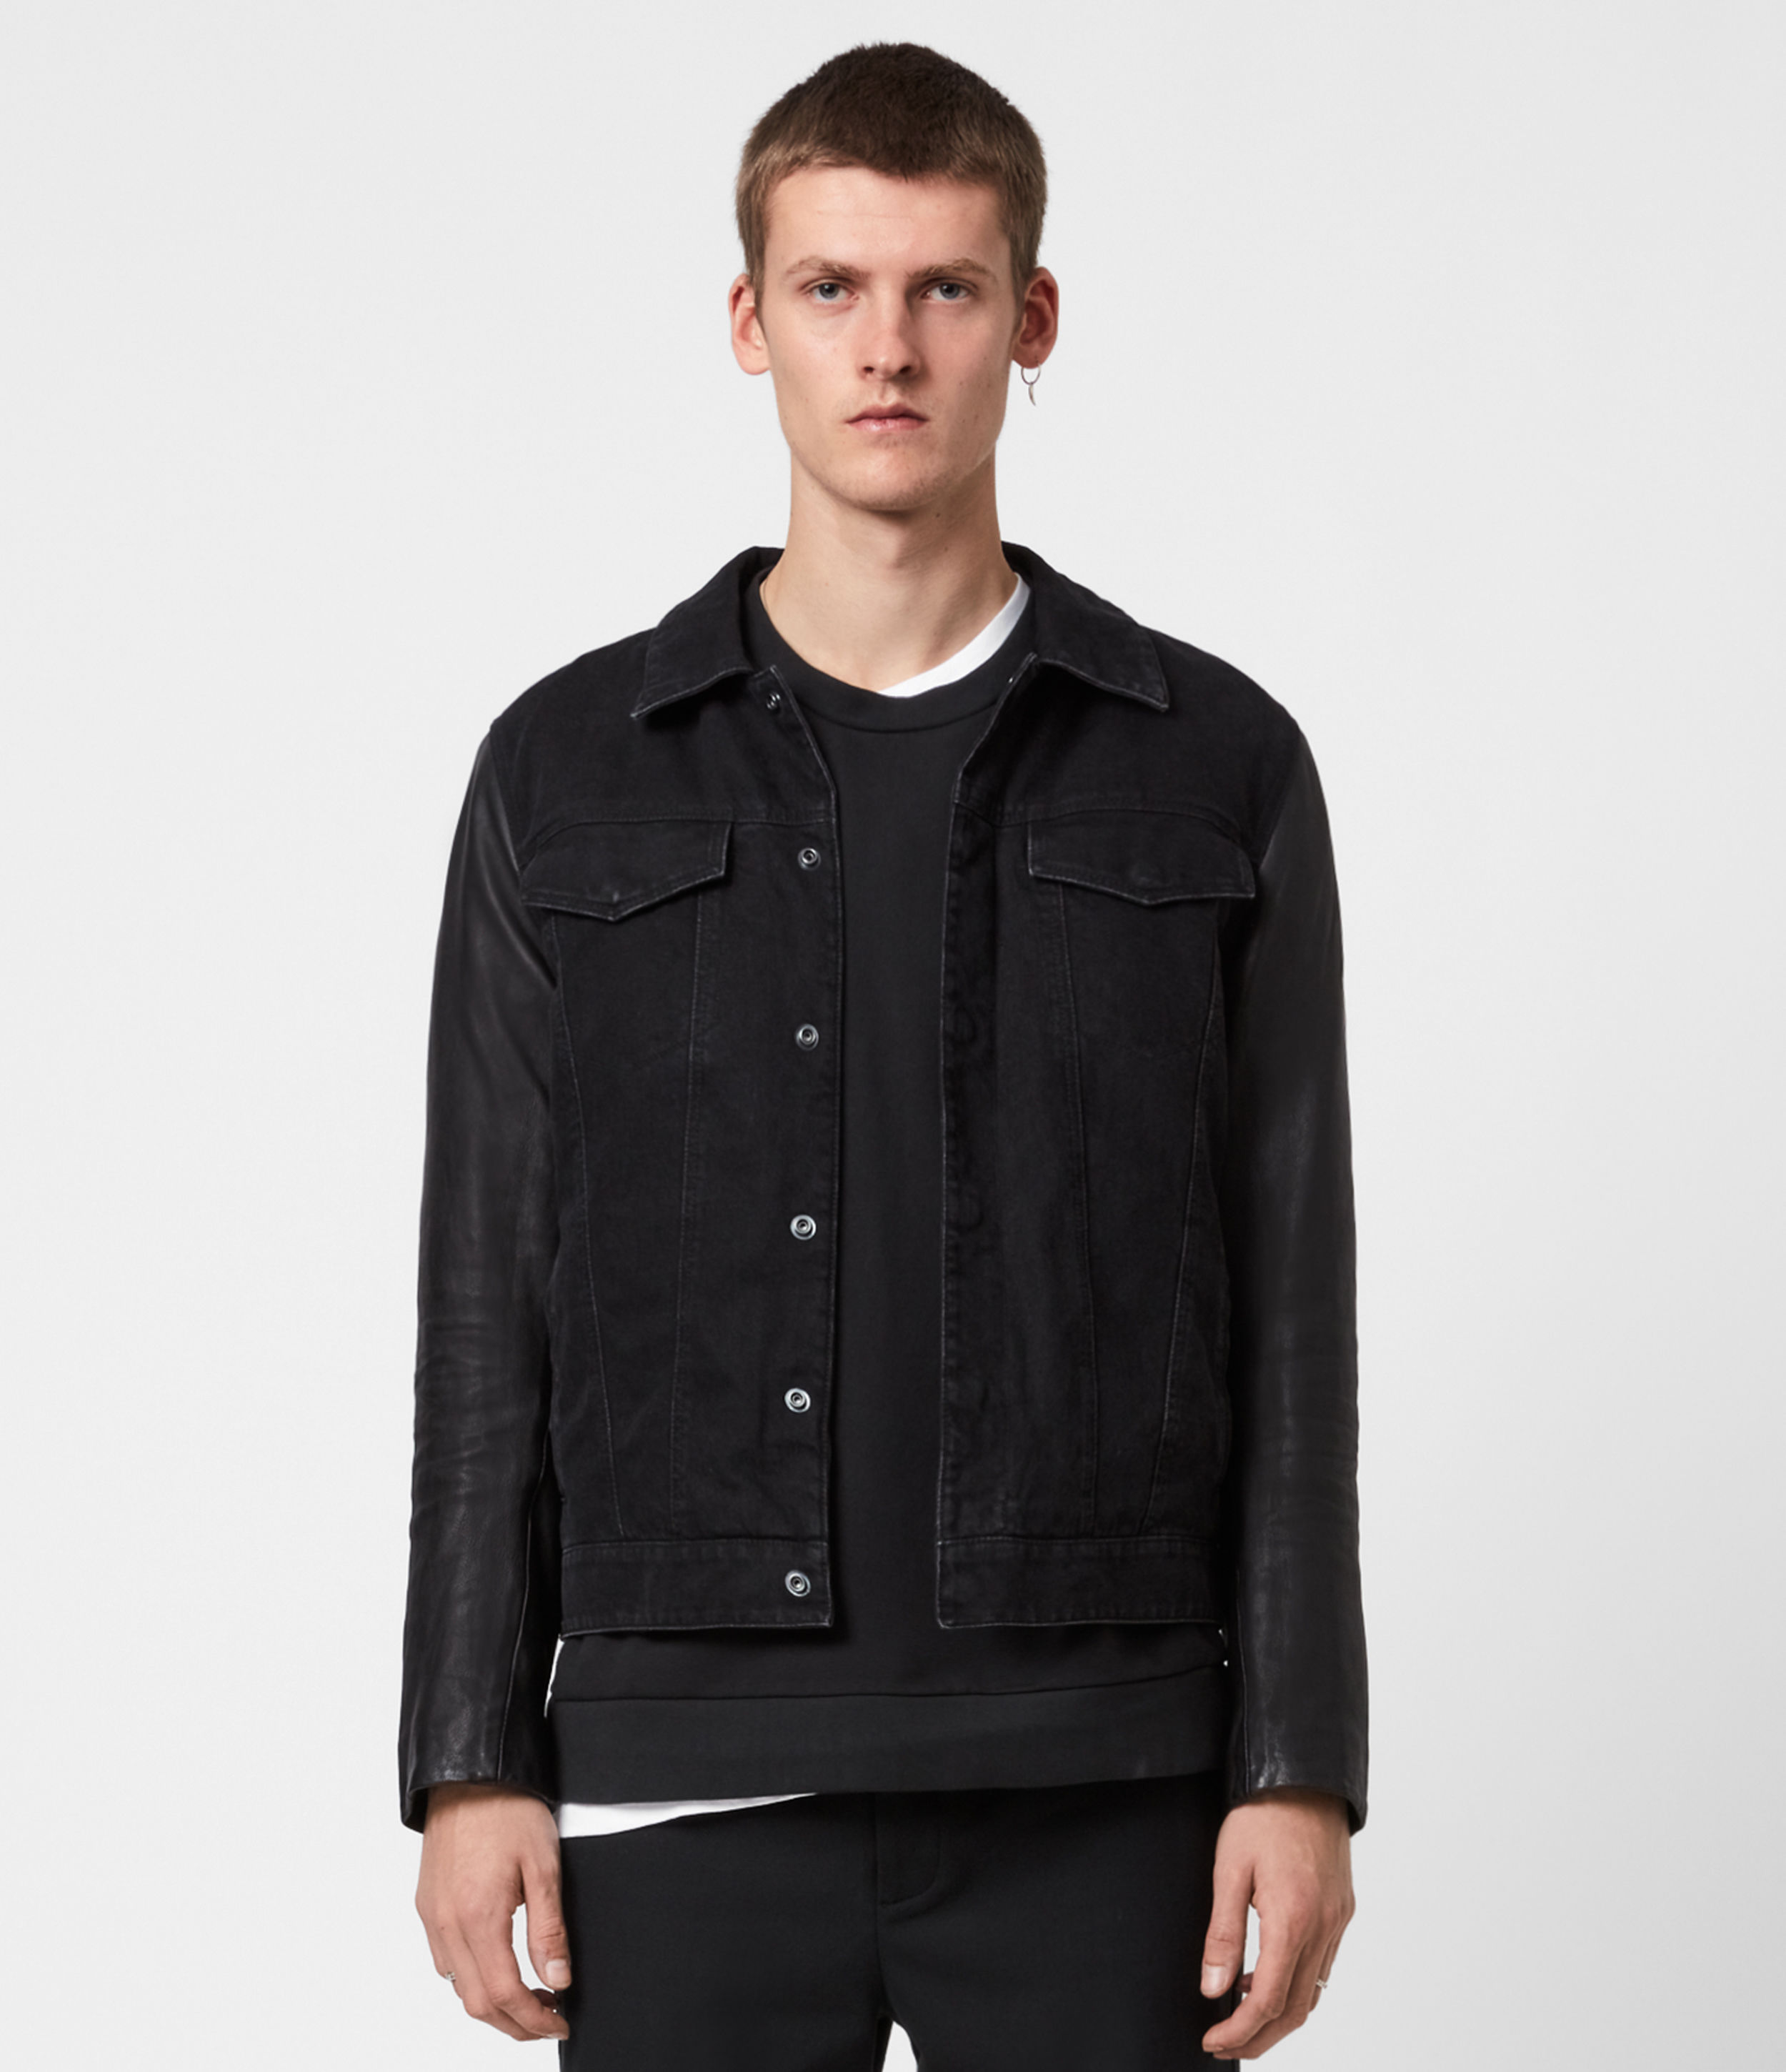 AllSaints Men's Leather Regular Fit Bennett Jacket, Black, Size: XXL